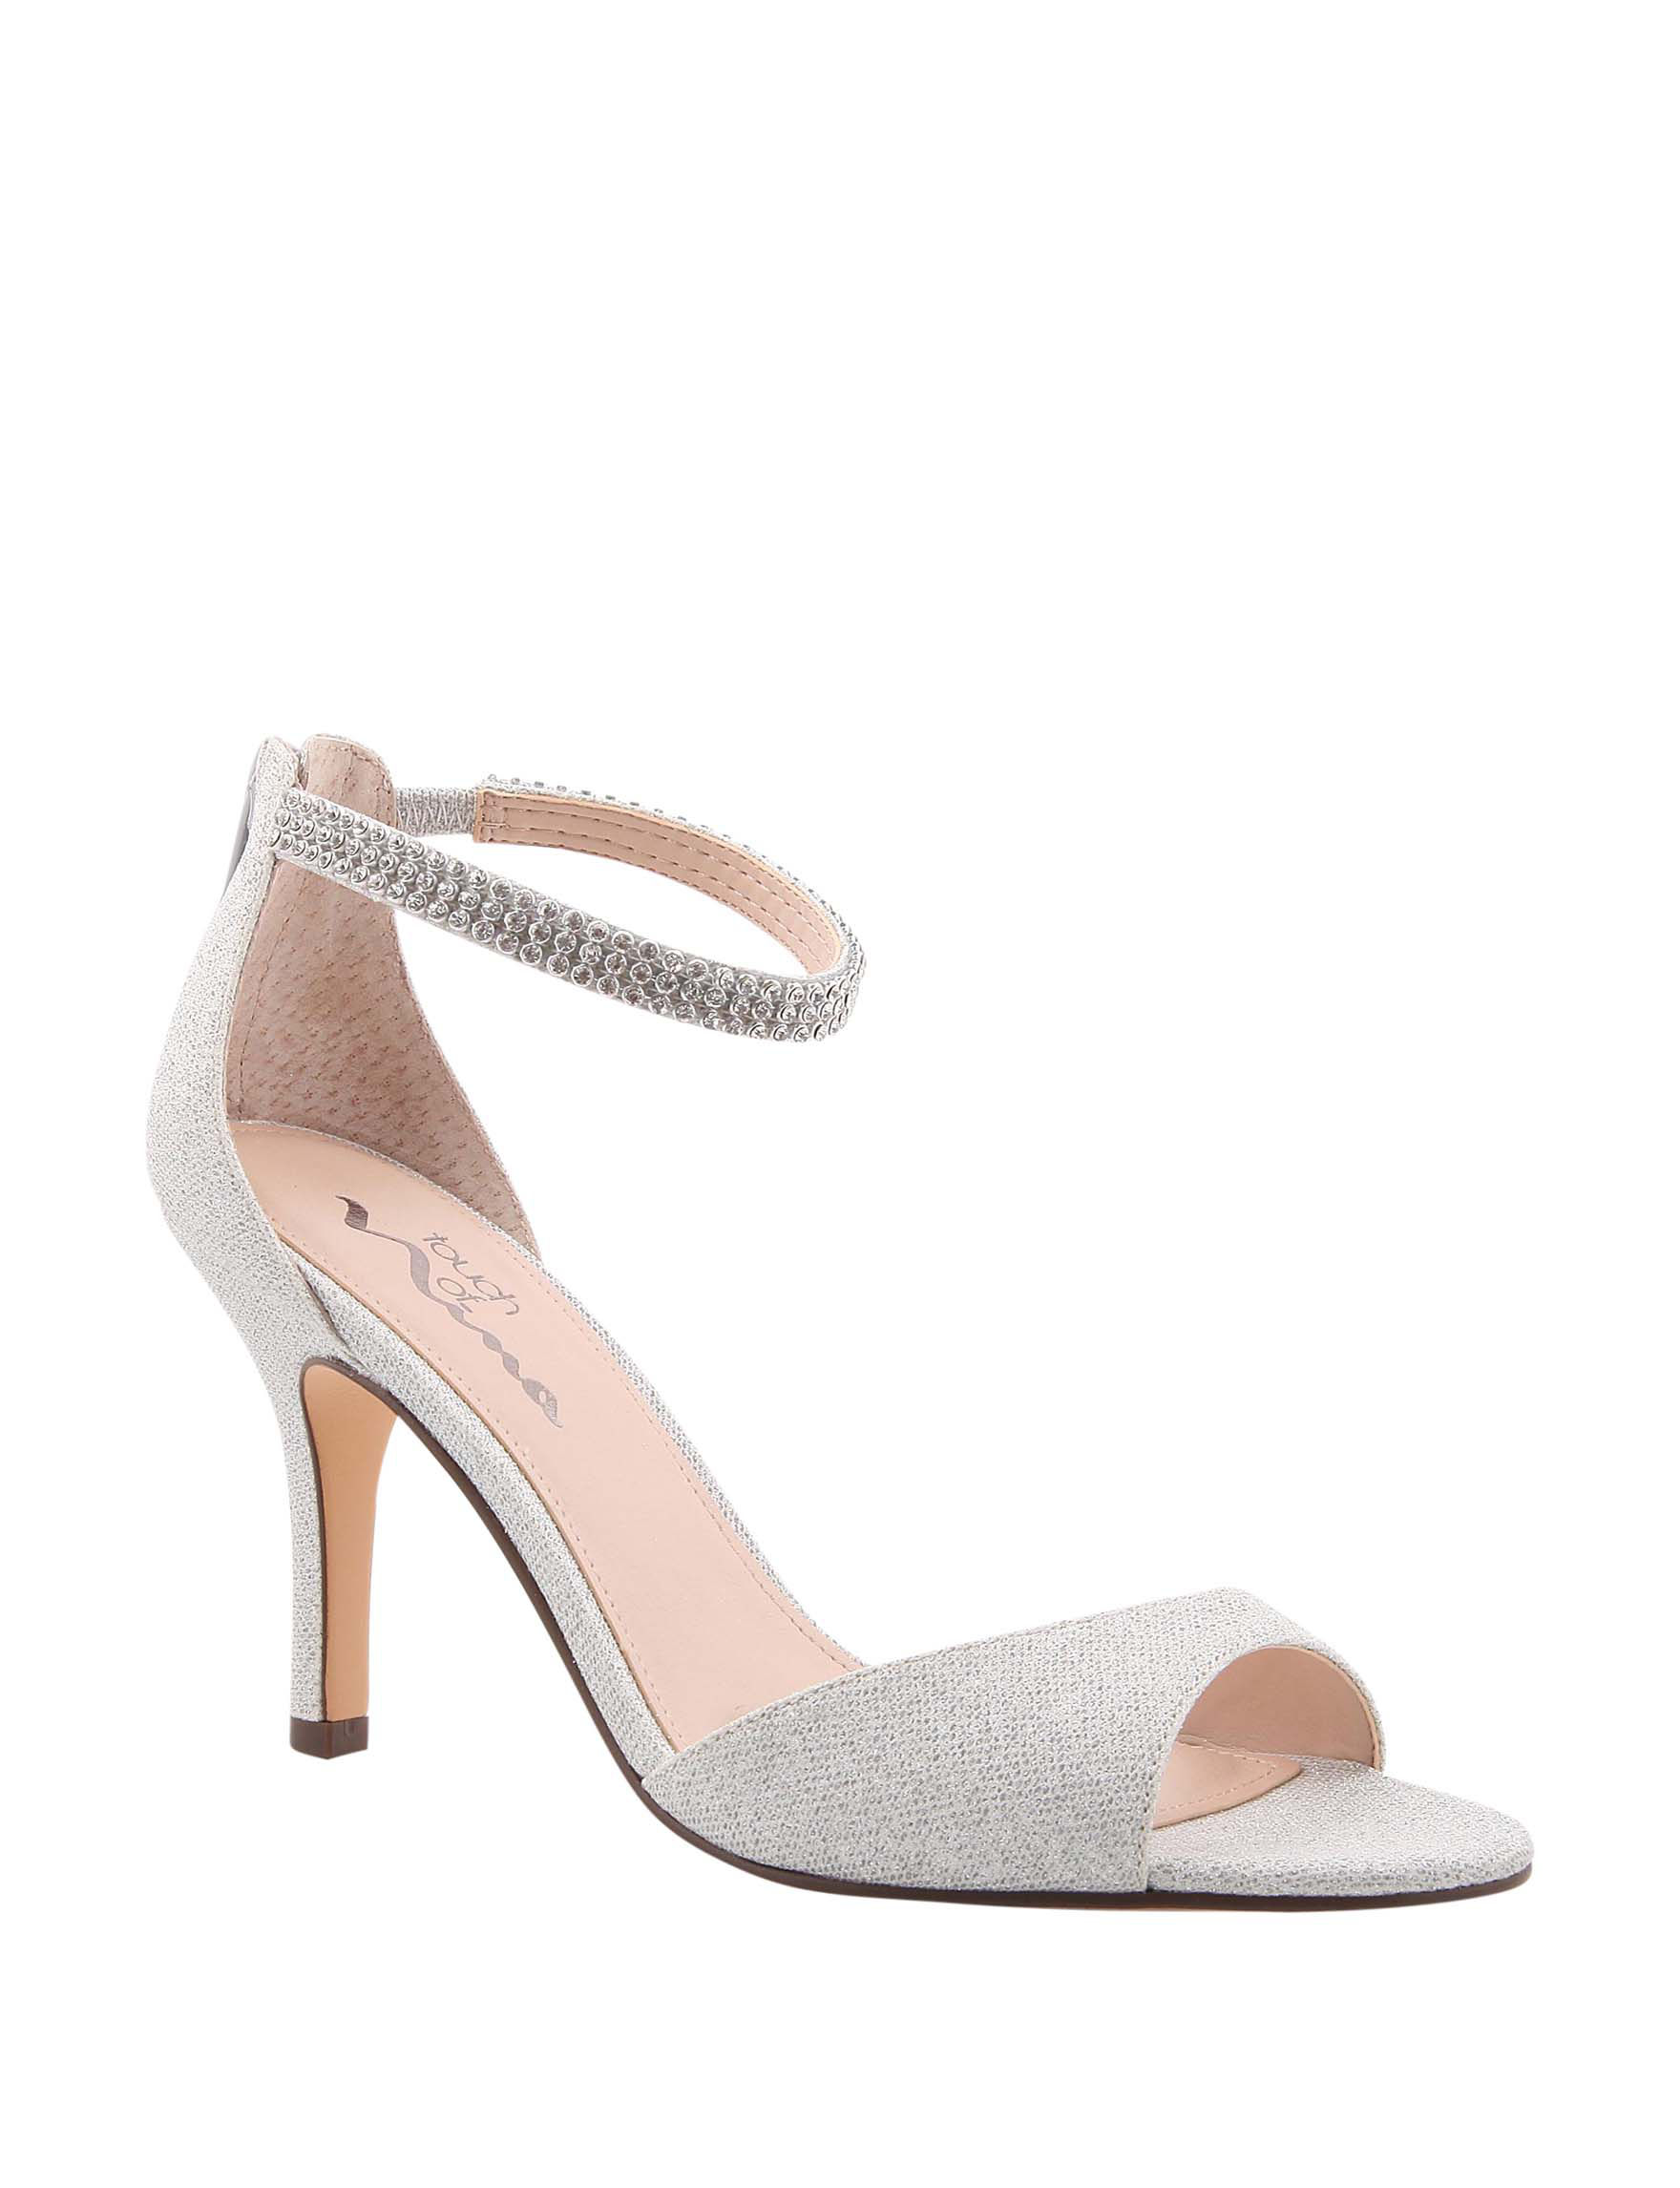 Touch of Nina Silver Heeled Sandals